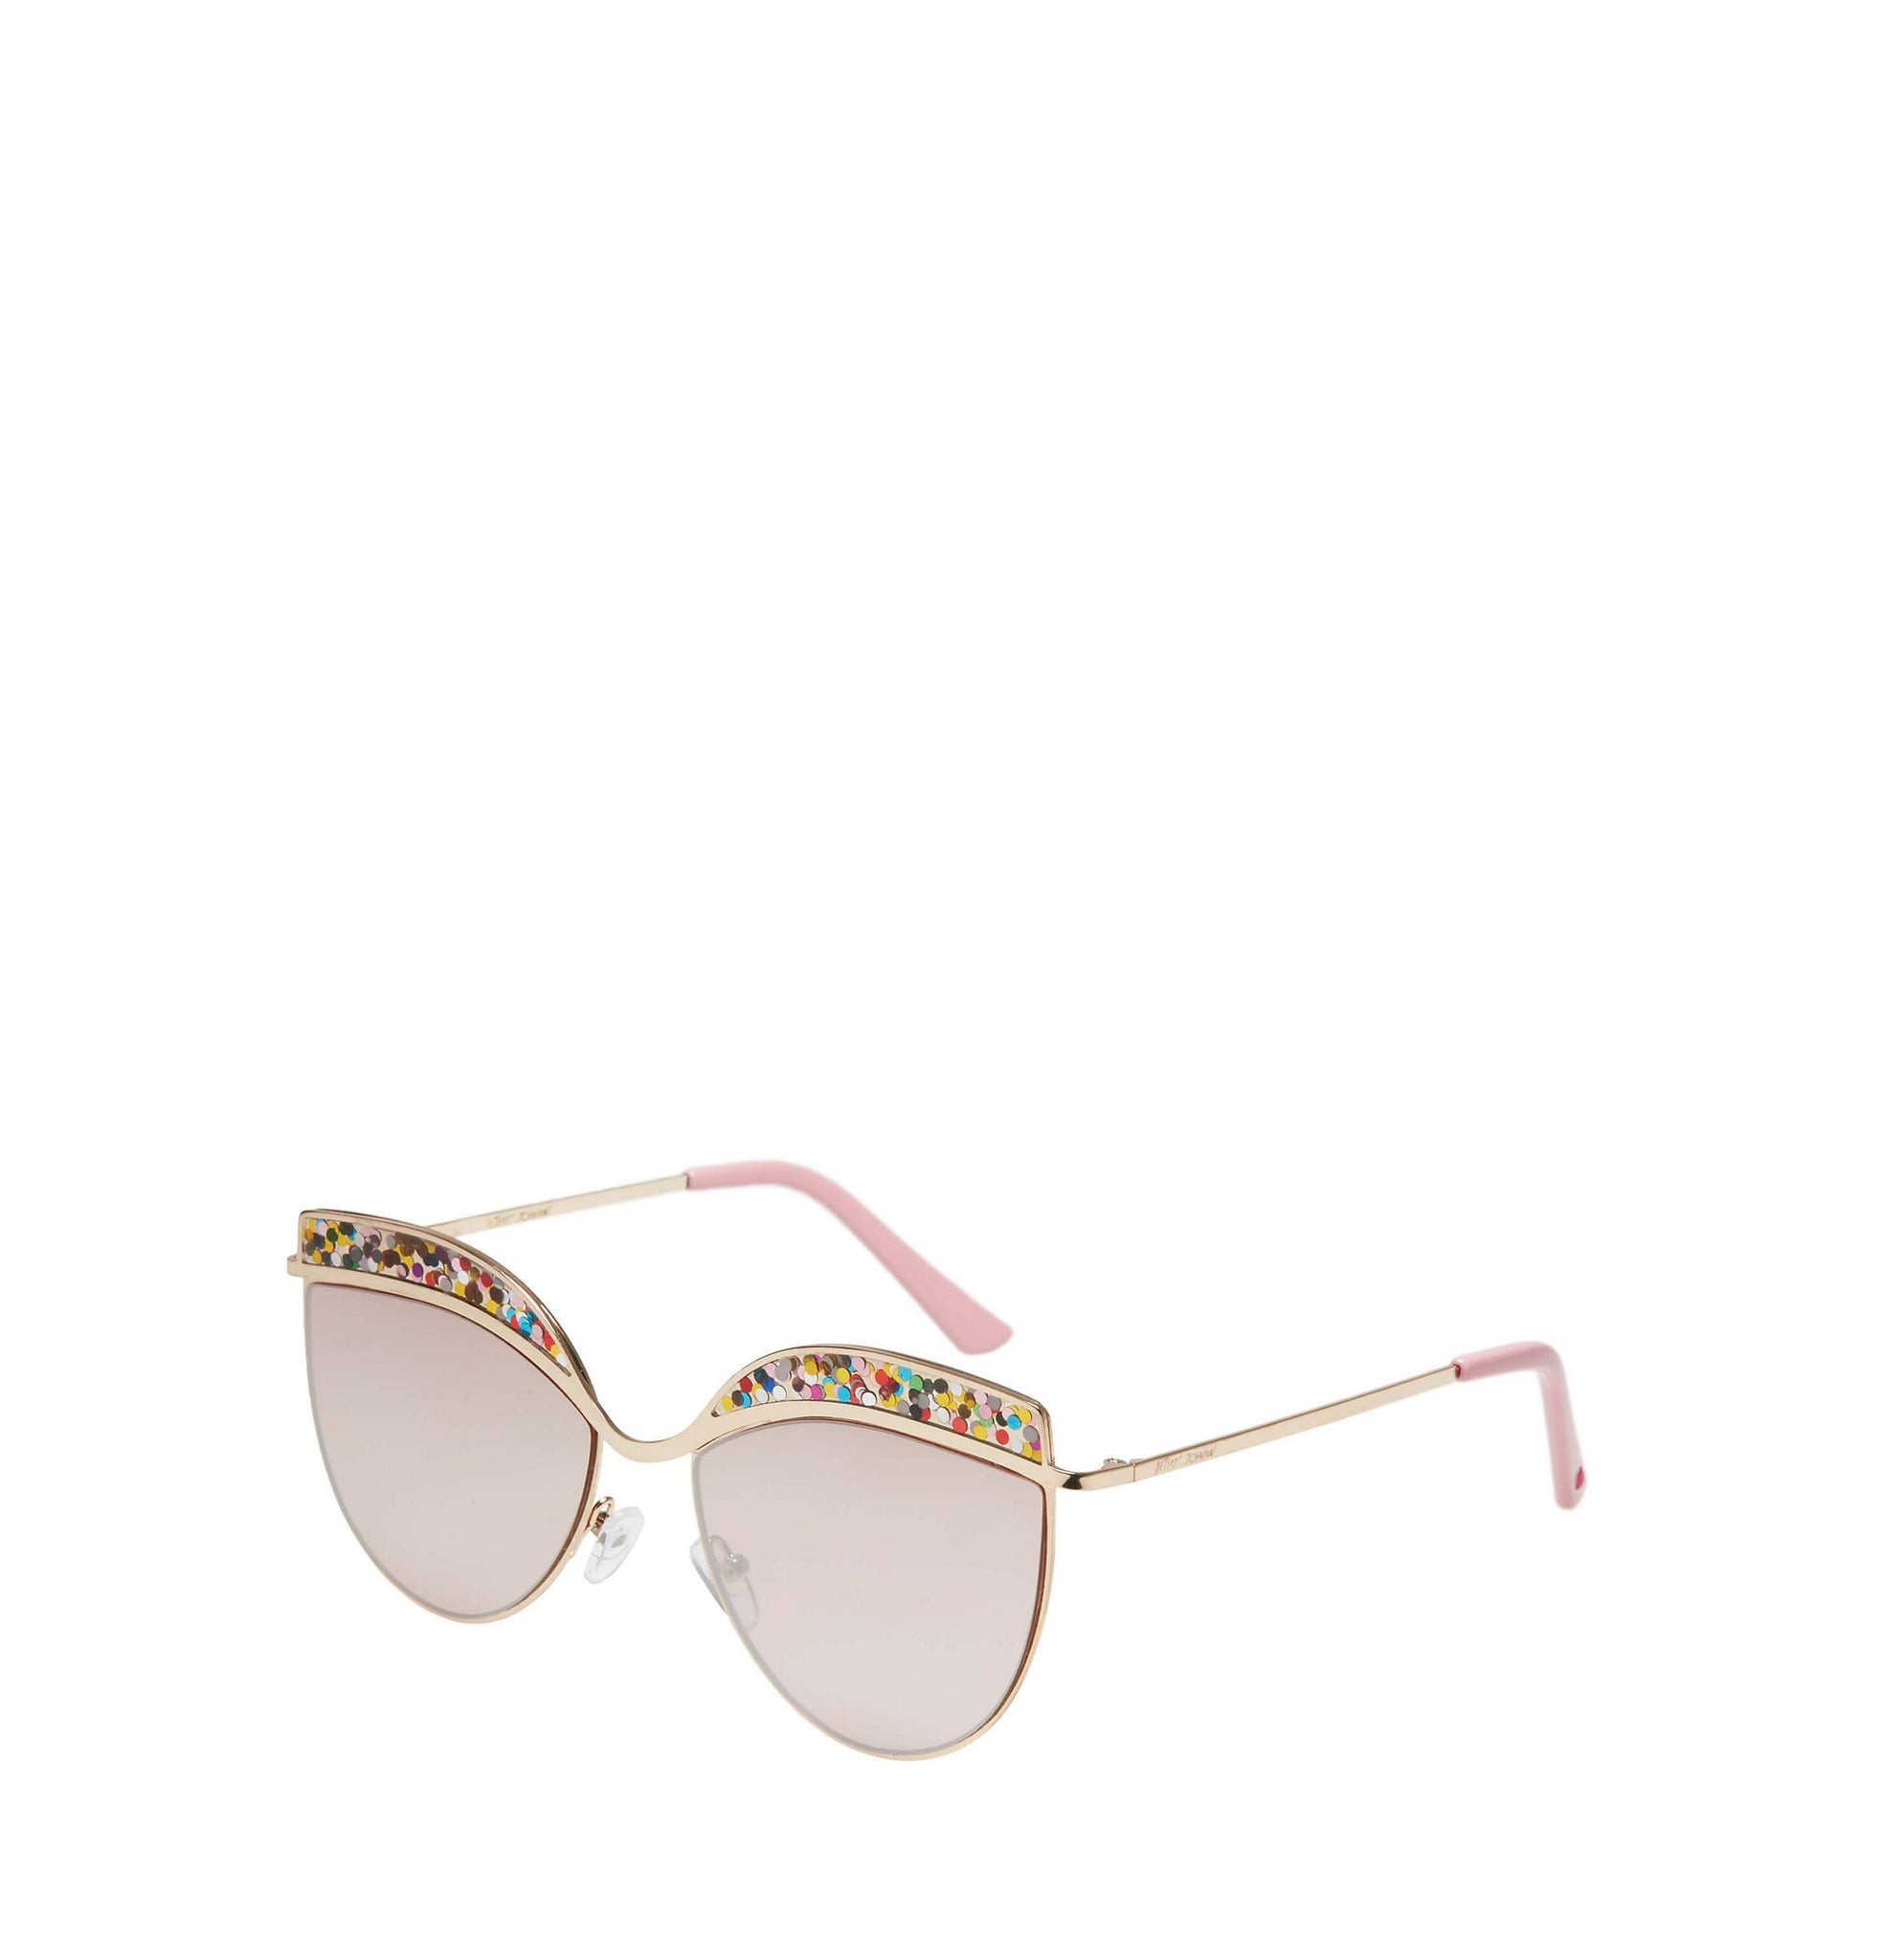 be94c3d5c7 ... ROCK CANDY CAT EYE SUNGLASSES GOLD - ACCESSORIES - Betsey Johnson ...